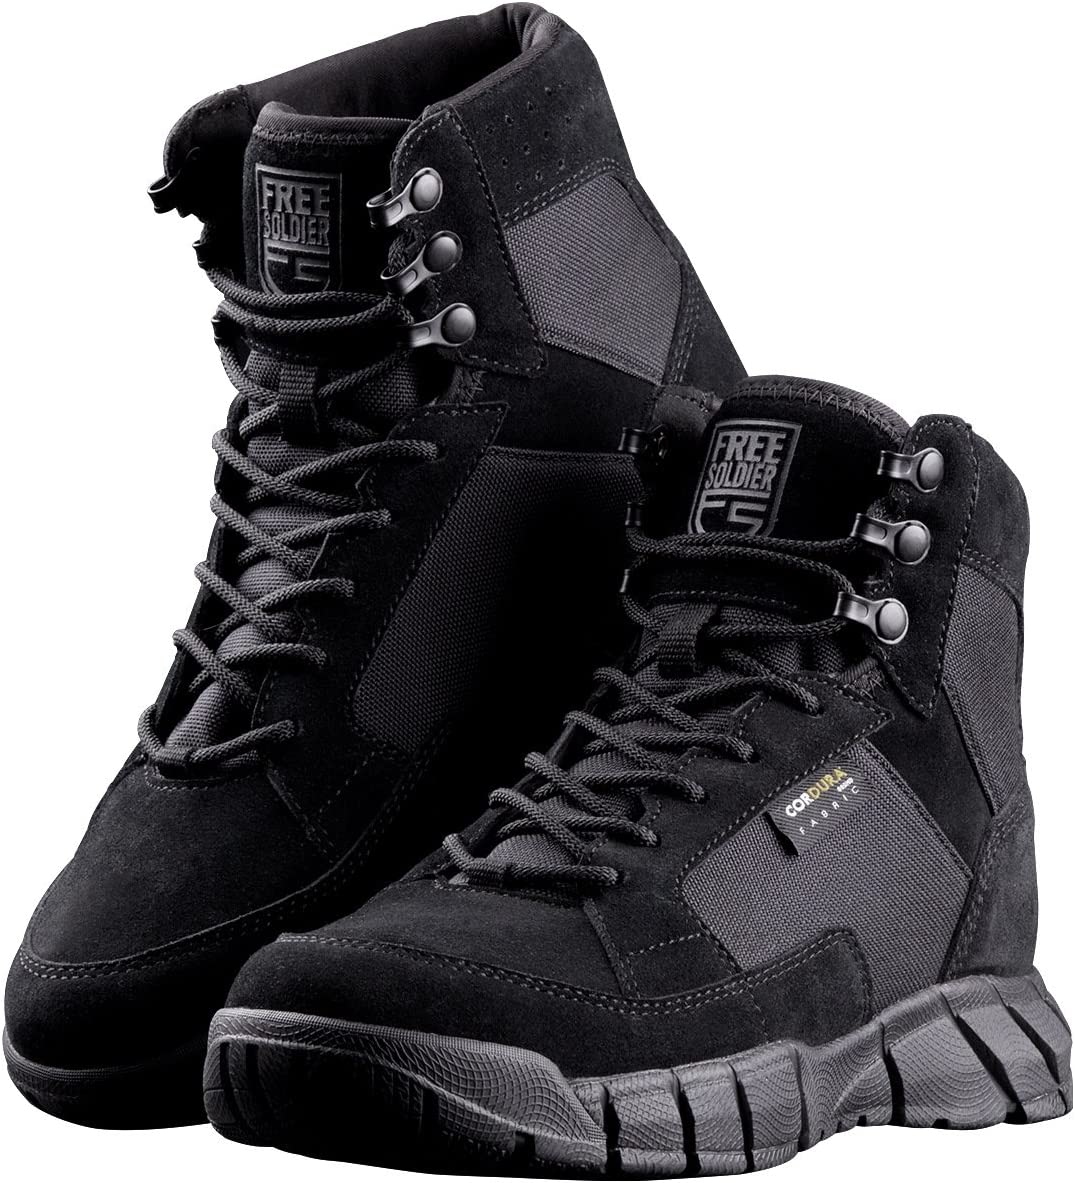 FREE SOLDIER Max 52% OFF Men's 6 Inch Ankle Tactical Boots Wor Military 4 years warranty Duty